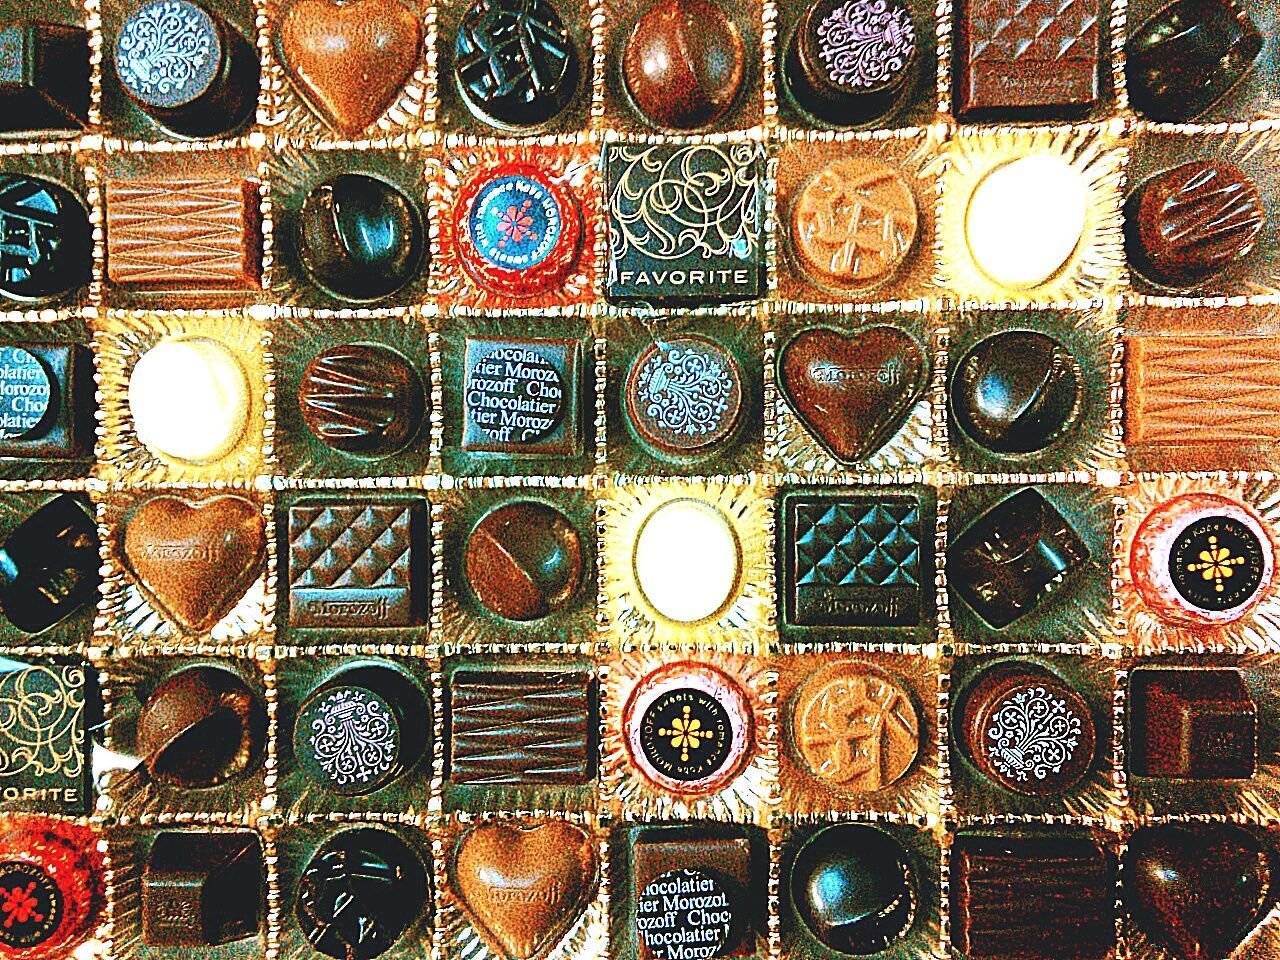 No People Full Frame Multi Colored Close-up Chocolates Cacao Food Sweets Sweet Food Brown White Tasty Yummy EyeEmNewHere EyeEmNewHere